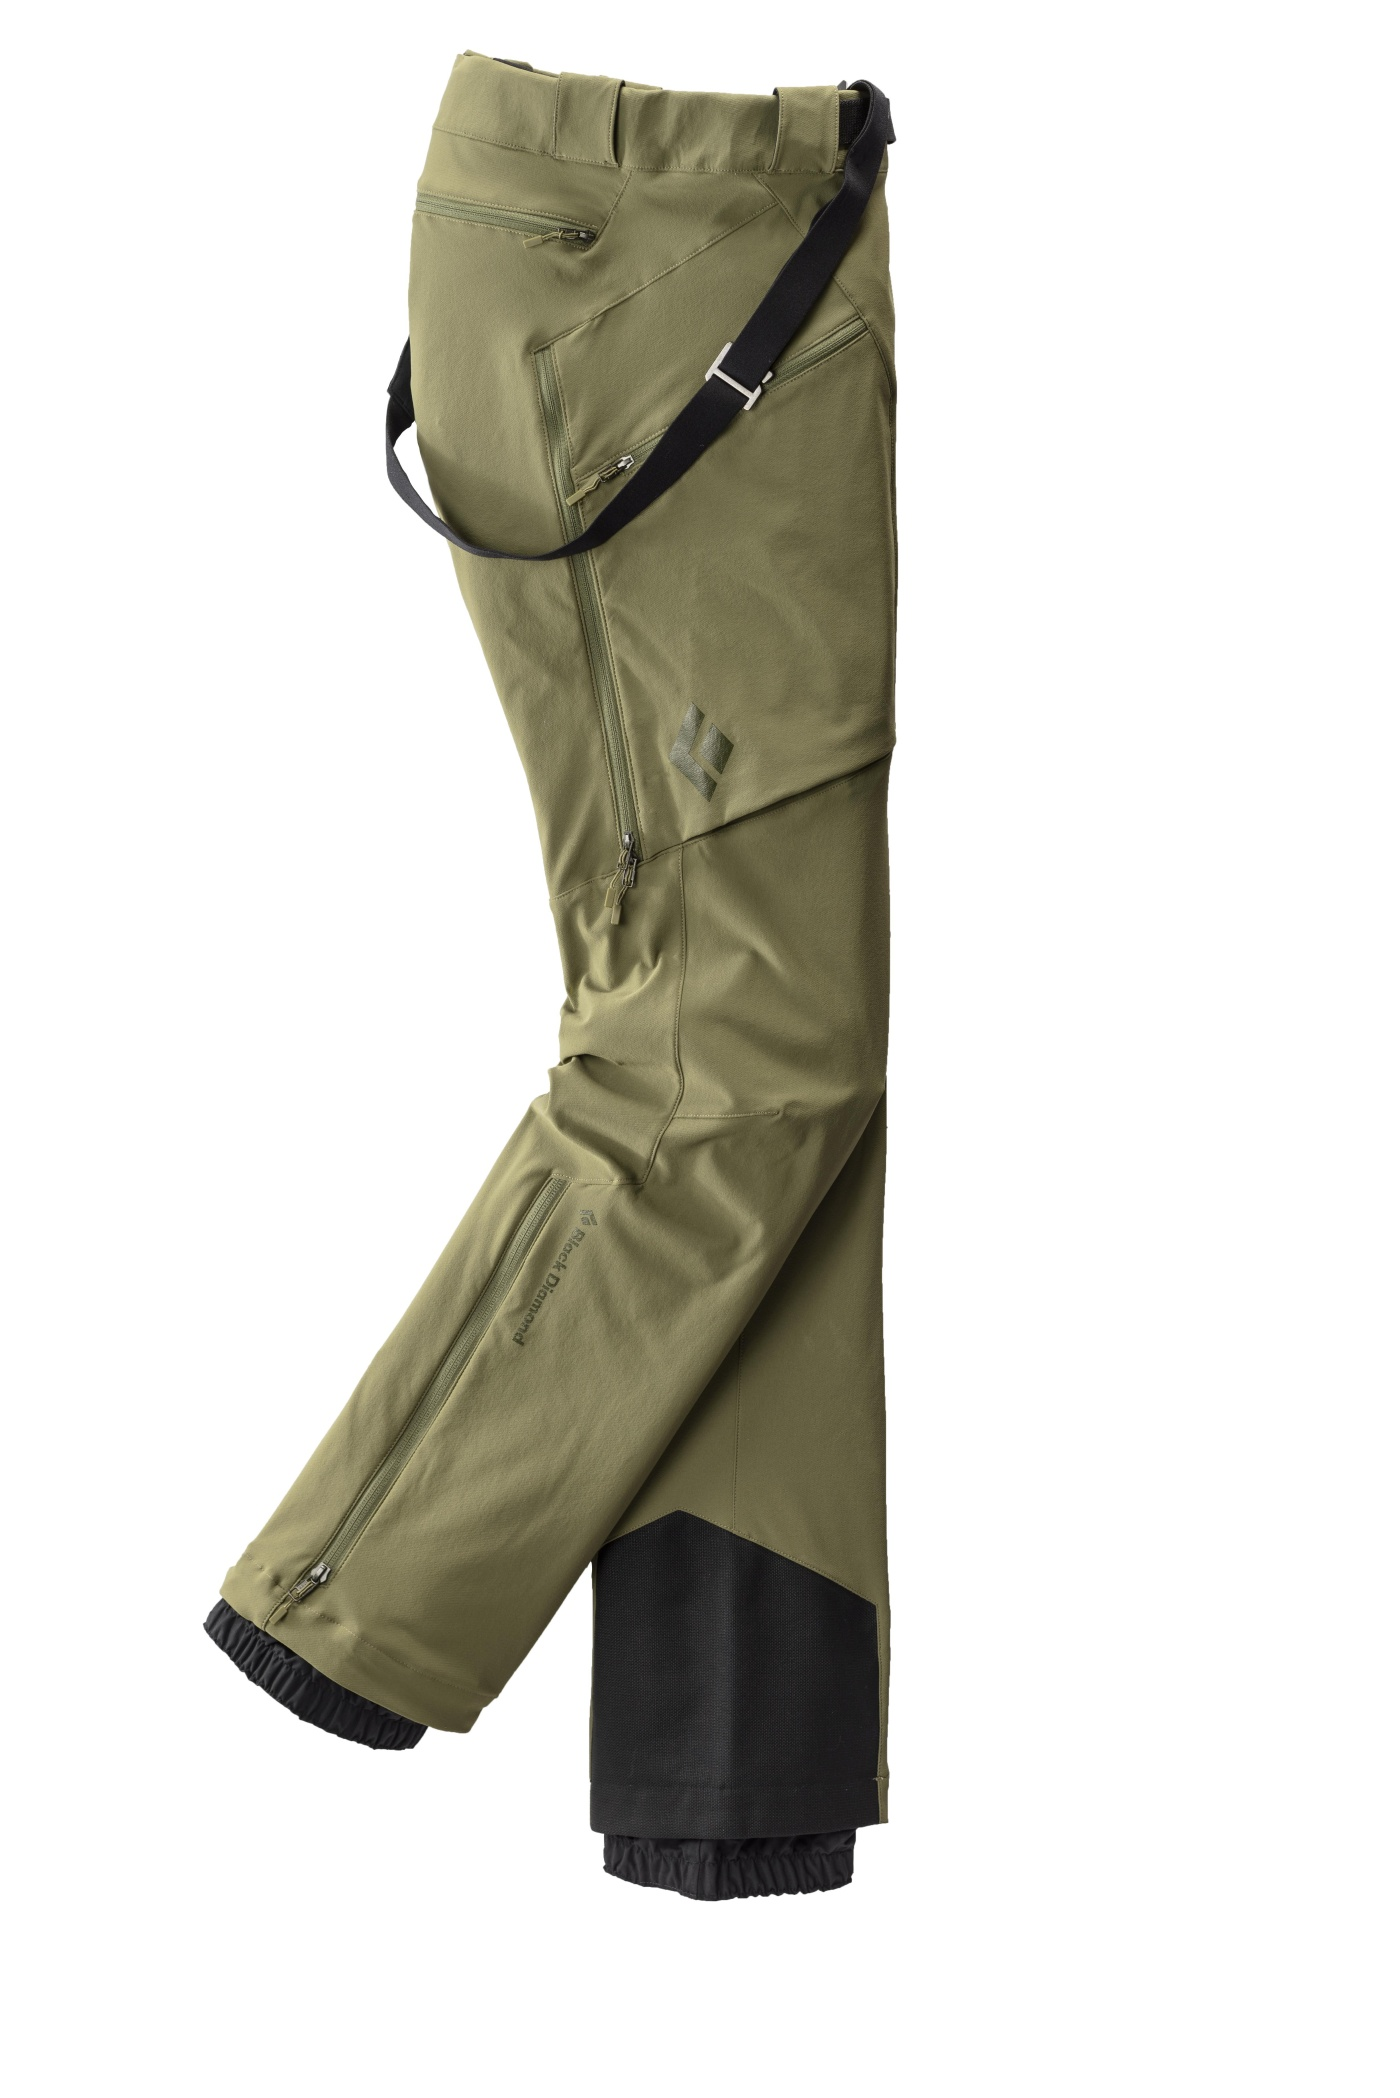 bf006da60 Black Diamond M Dawn Patrol Pants Burnt Olive - us